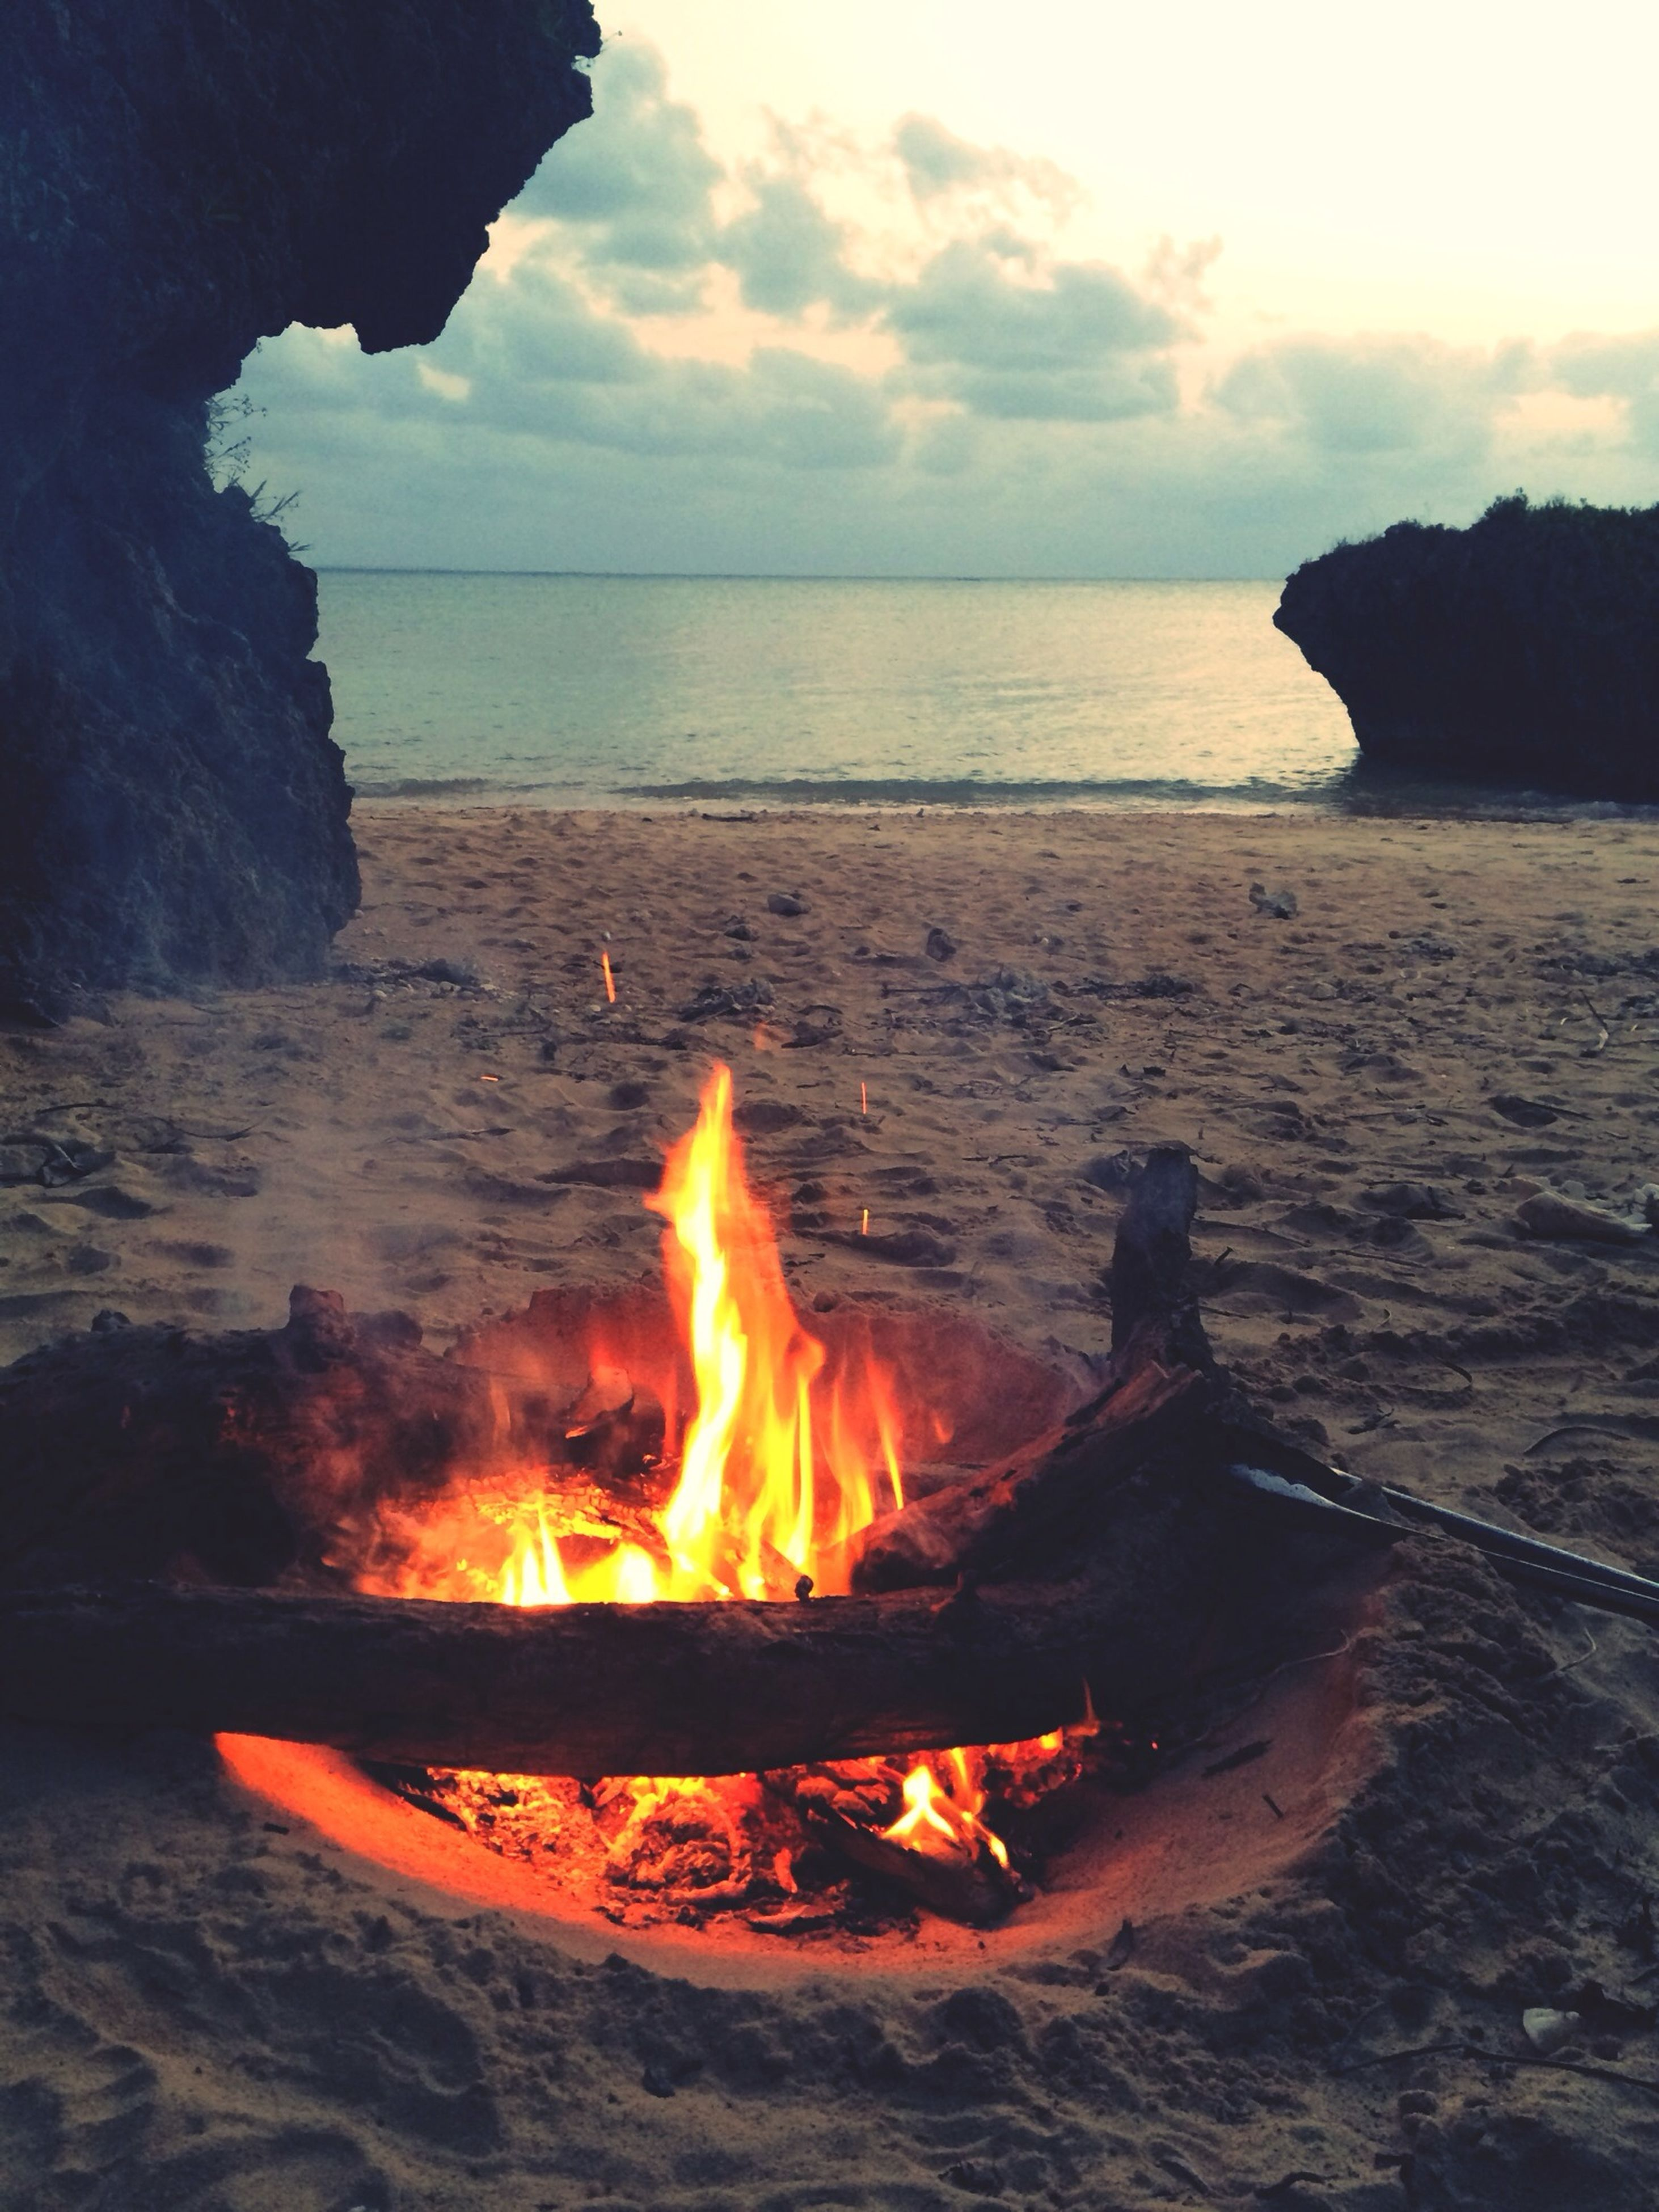 flame, burning, sunset, fire - natural phenomenon, heat - temperature, water, orange color, sea, bonfire, sun, scenics, rock - object, beach, beauty in nature, rock formation, fire, campfire, tranquil scene, heat, sky